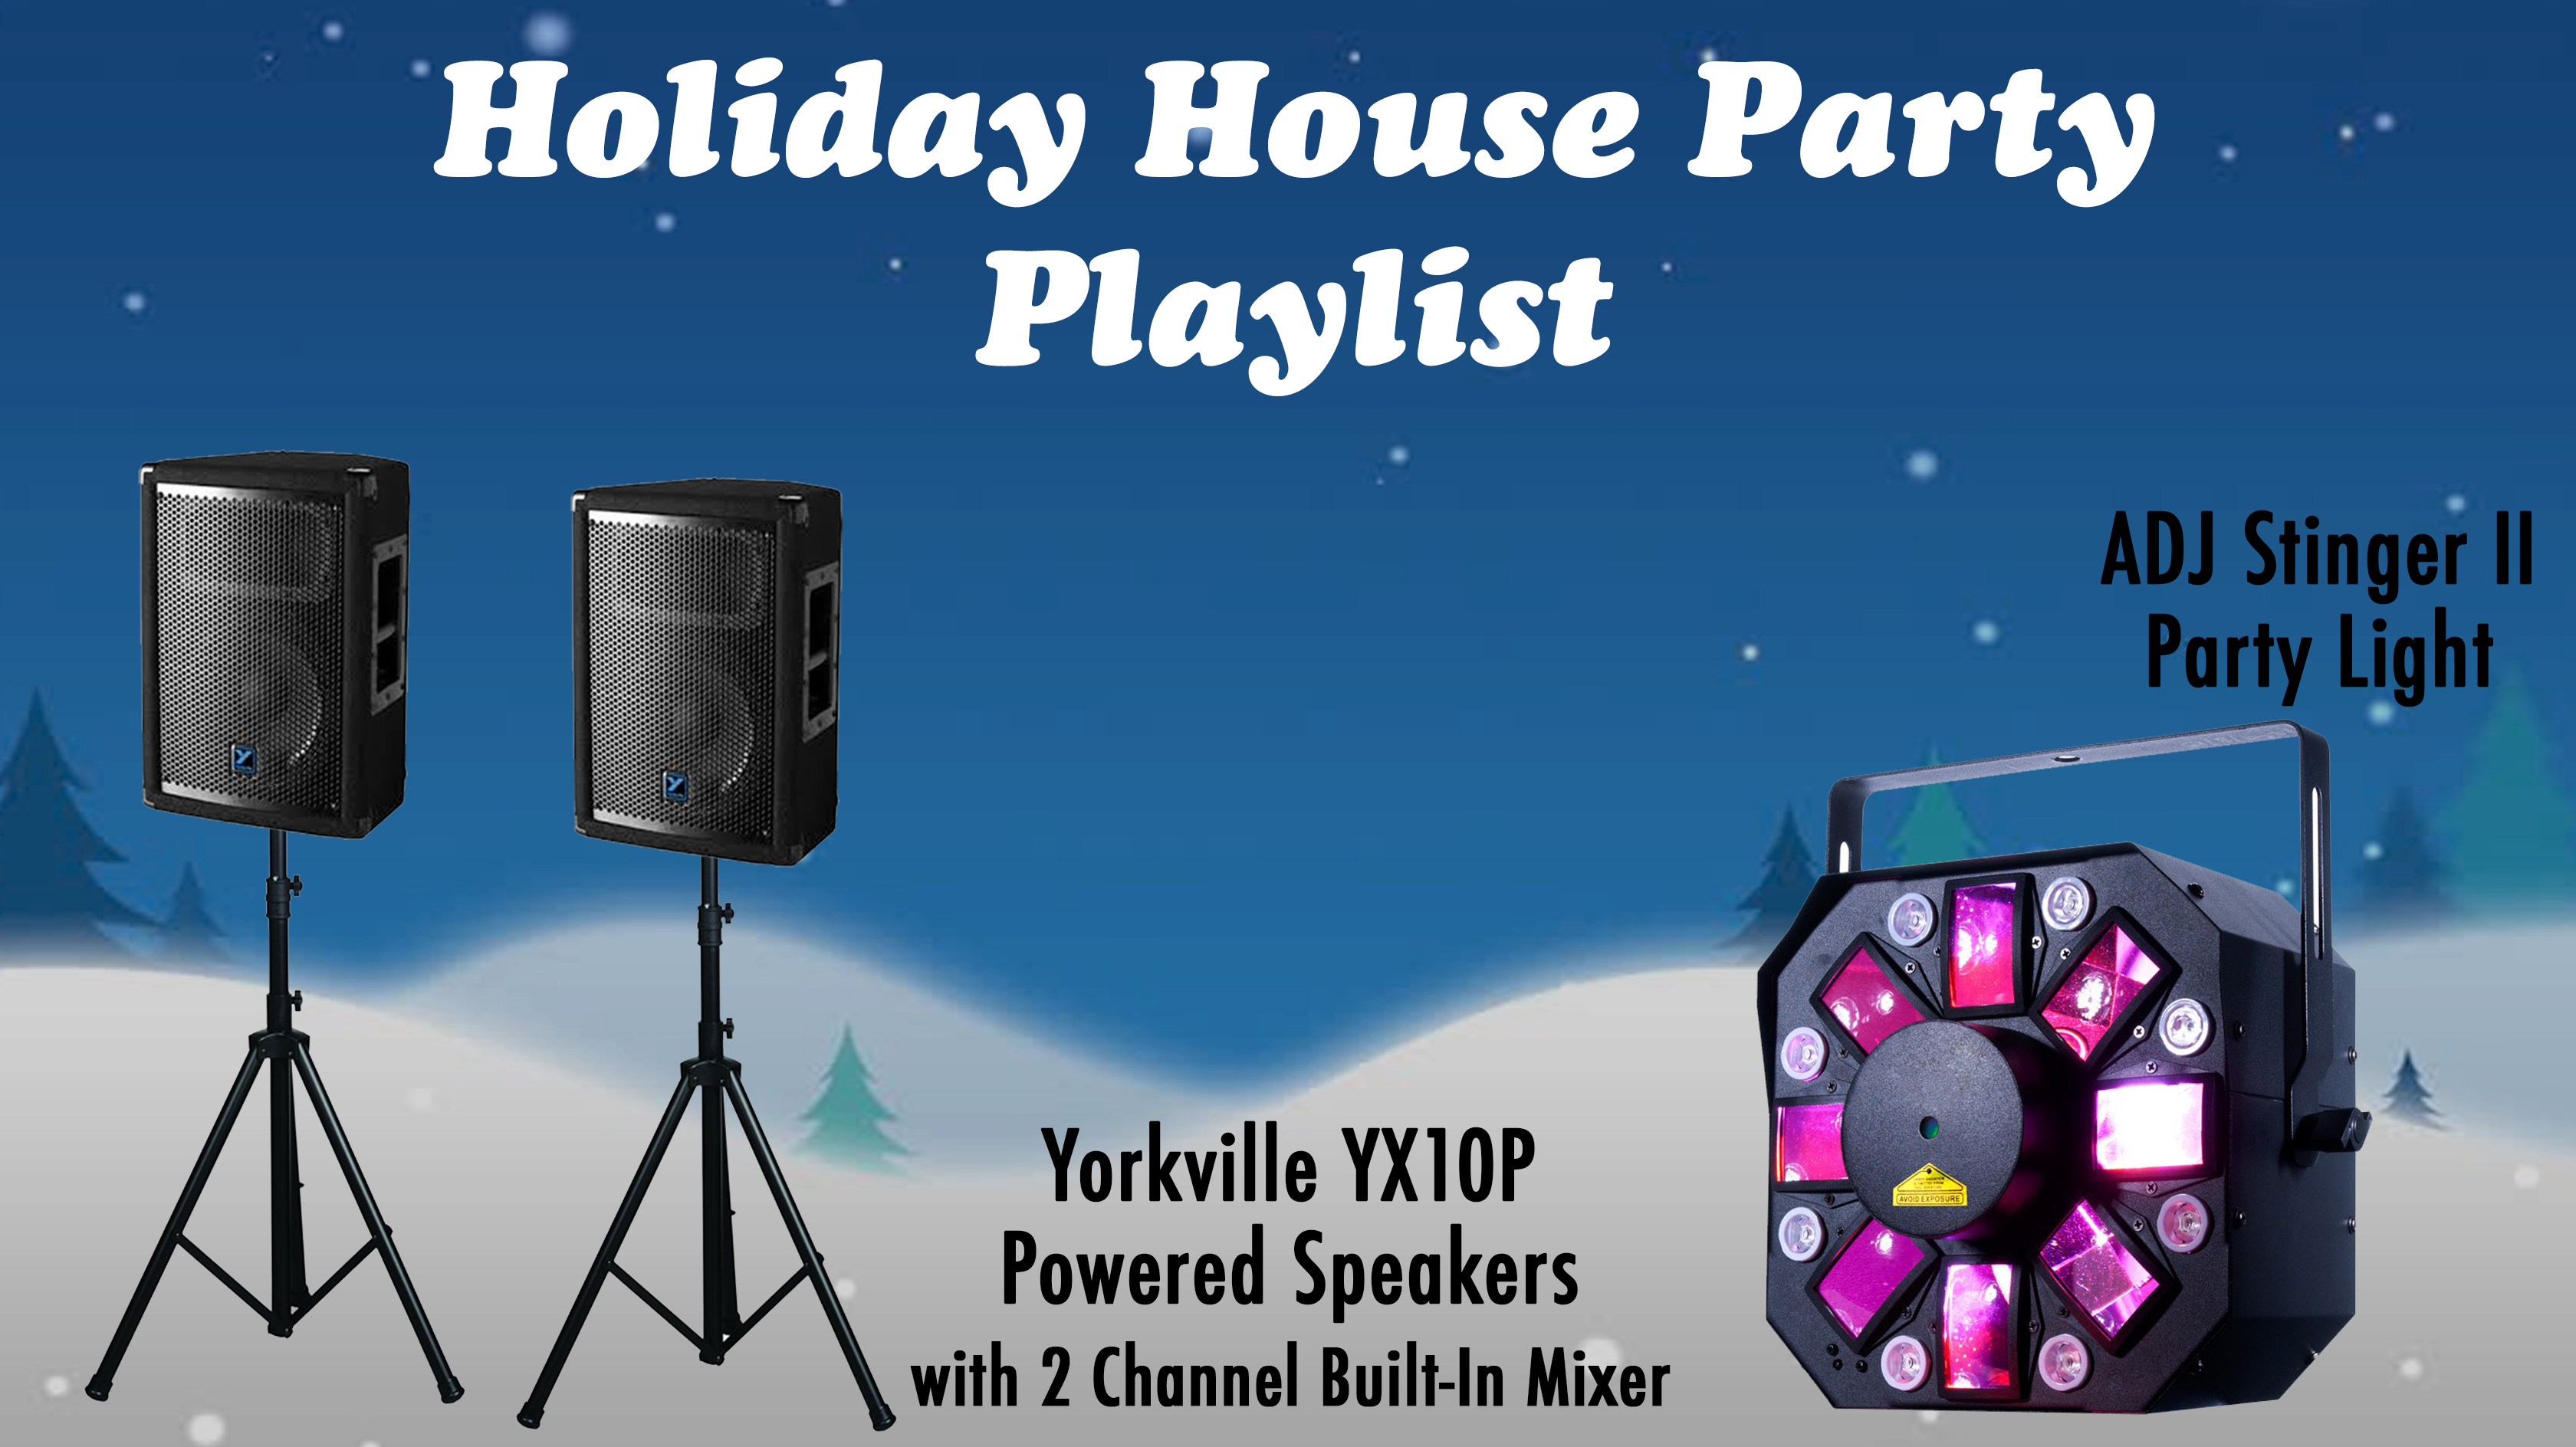 Holiday House Party Playlist